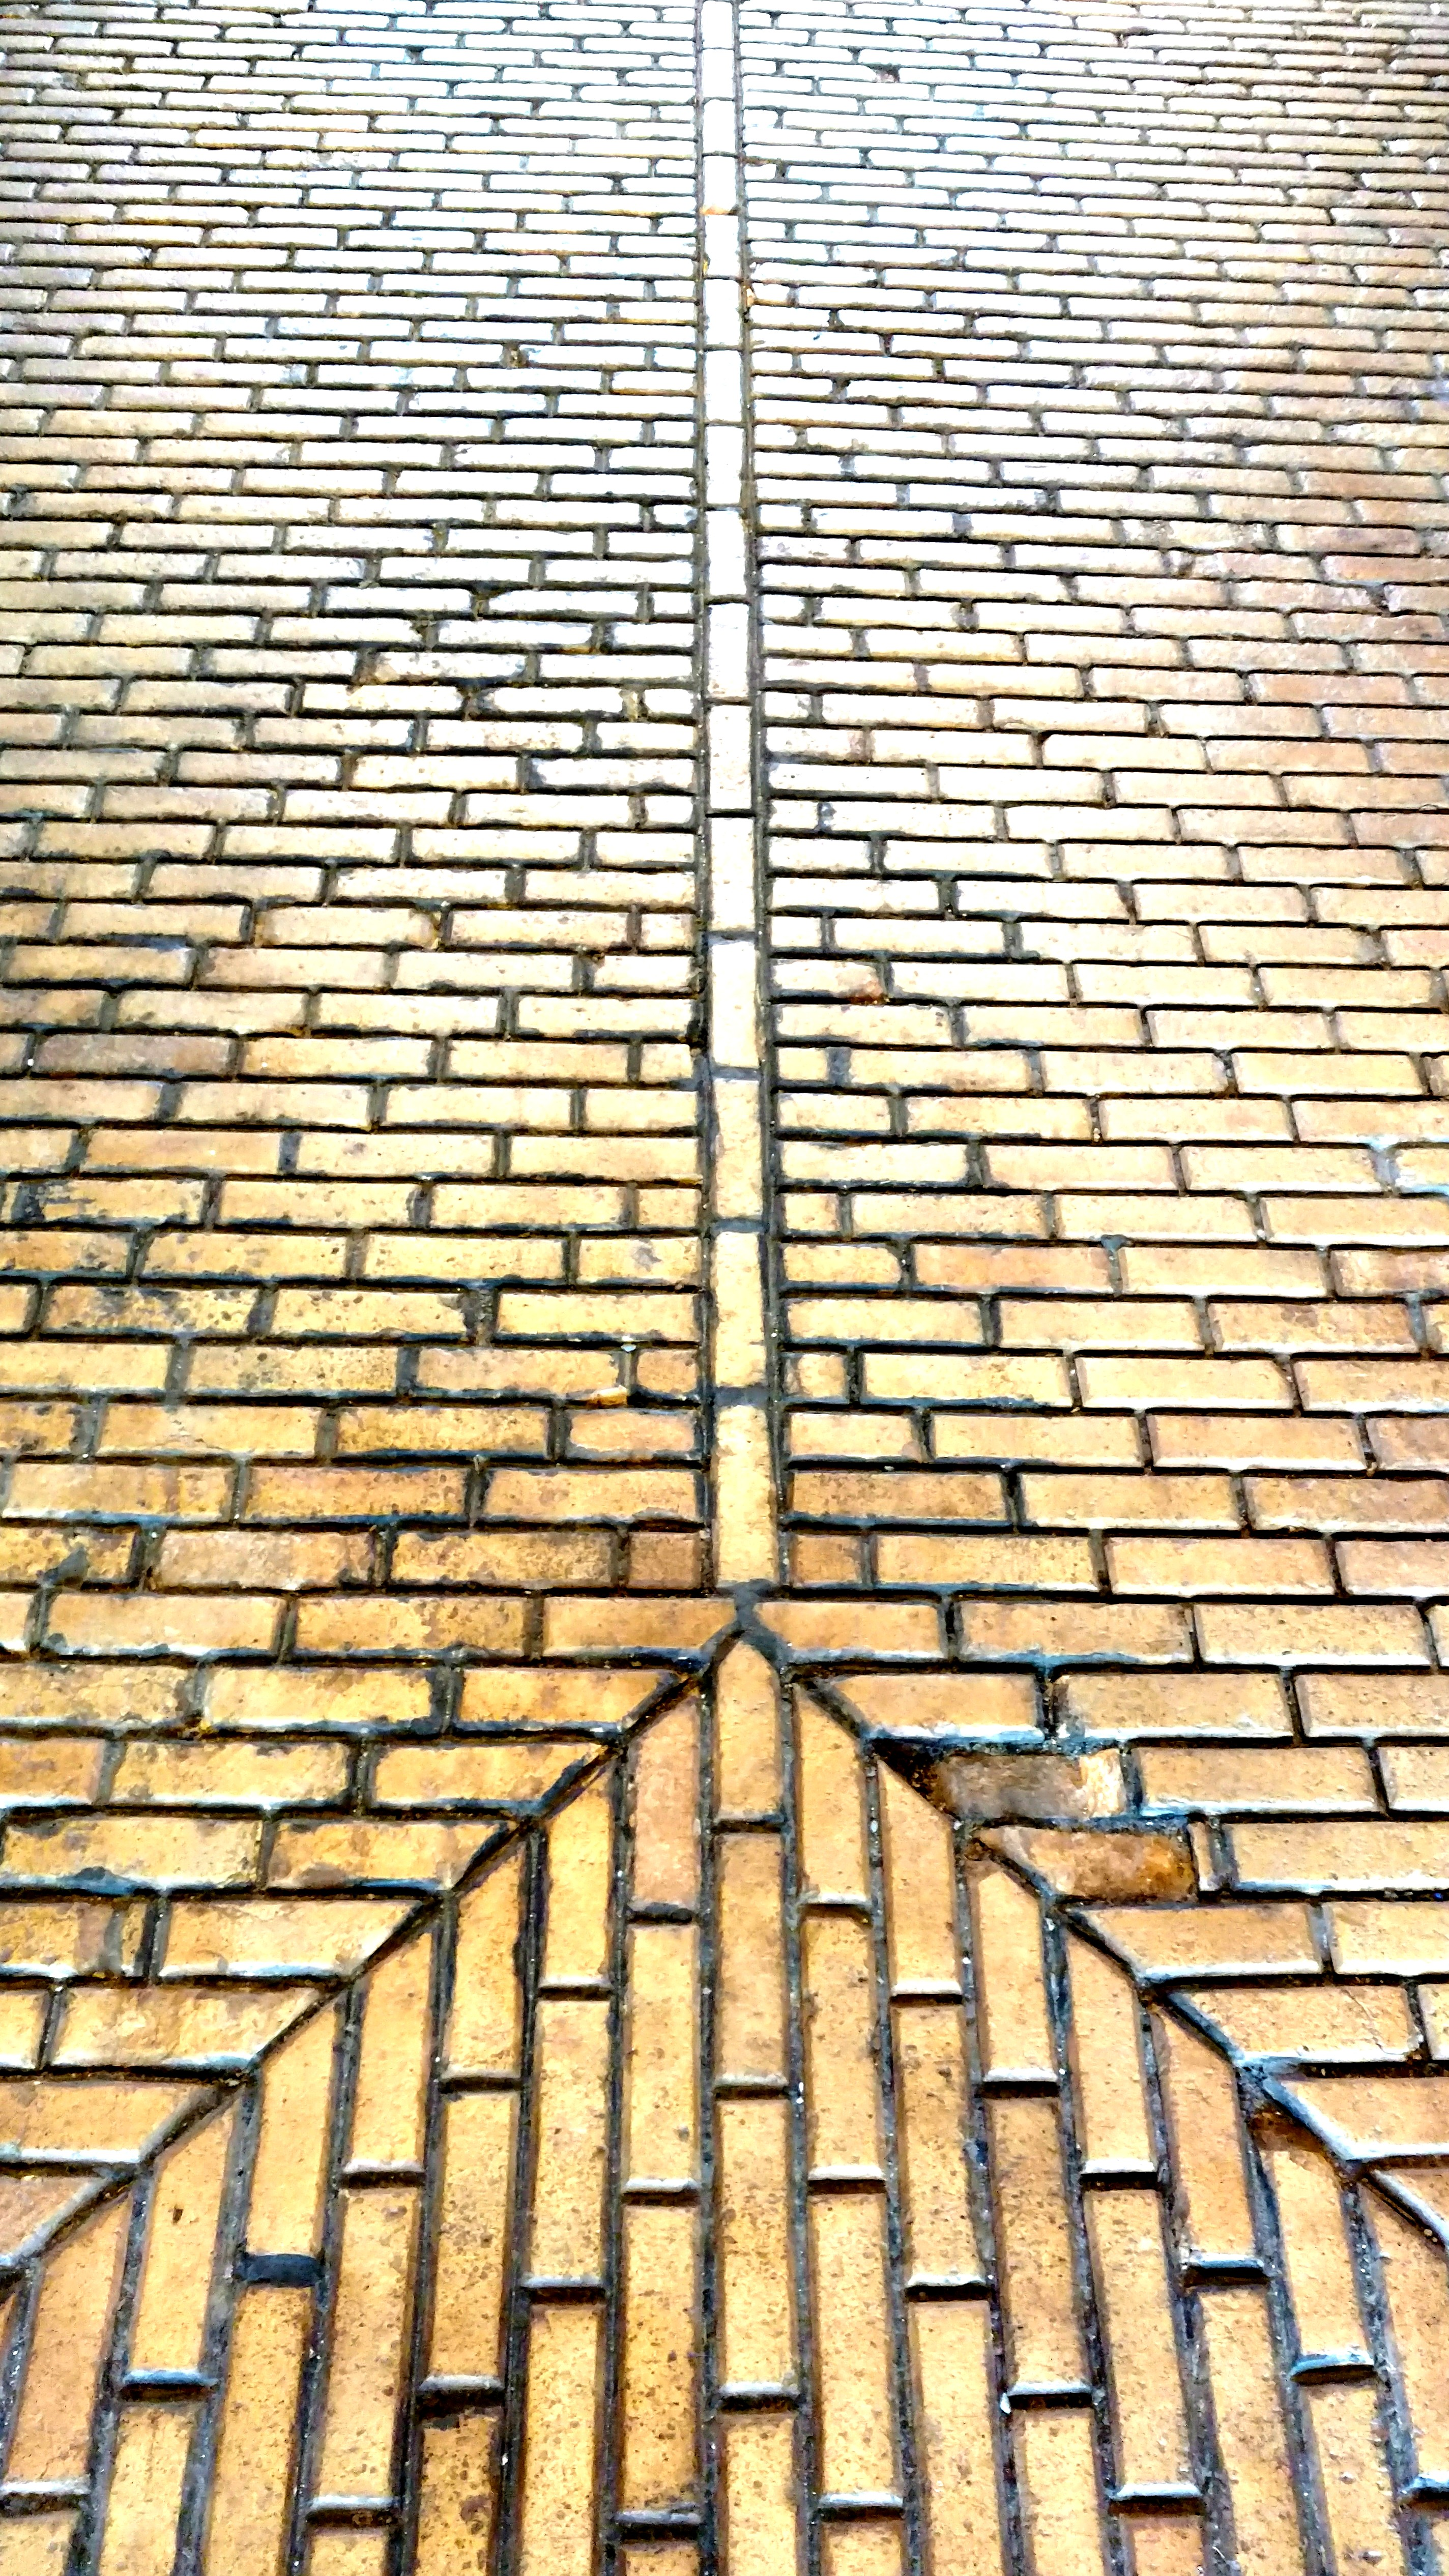 An example of the brick arrangement in the floors of the stables: channels were constructed by the bricks which led to drains. Photo taken by Ellen Tuttle